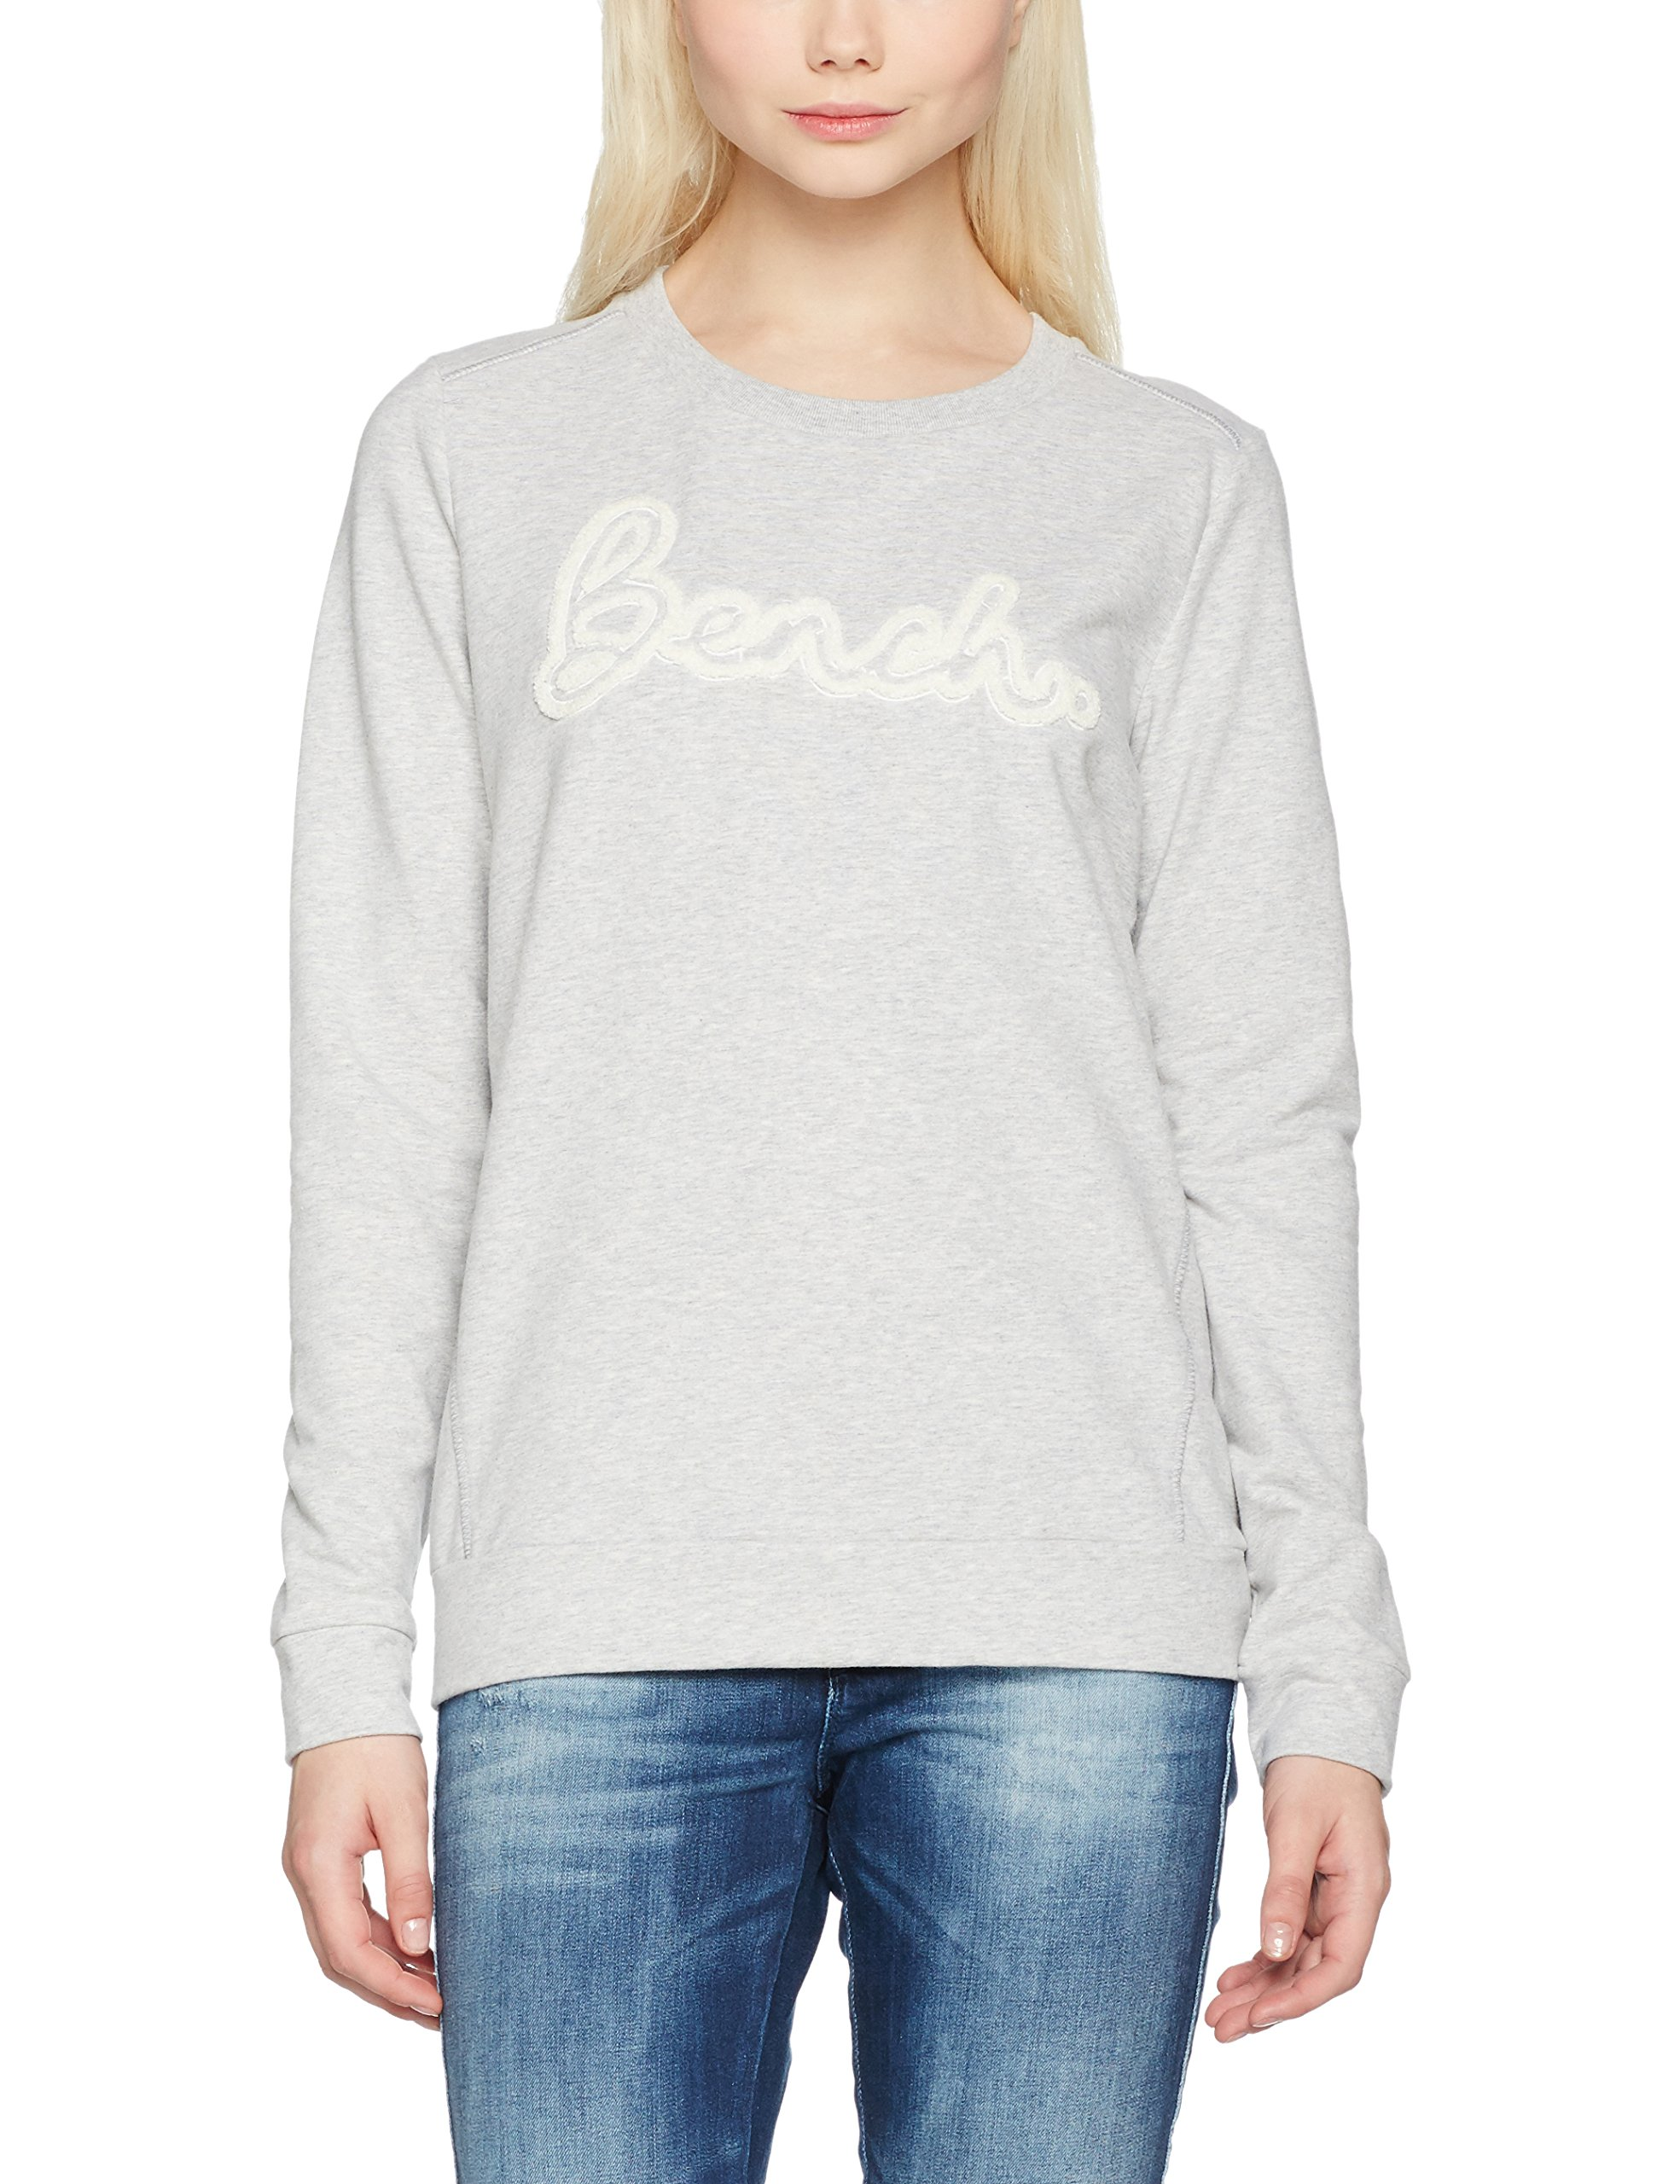 PullGrissummer Marl Hole Ma102638taille Grey Bench Embro FabricantSFemme Crew Neck BWrdxEoeCQ